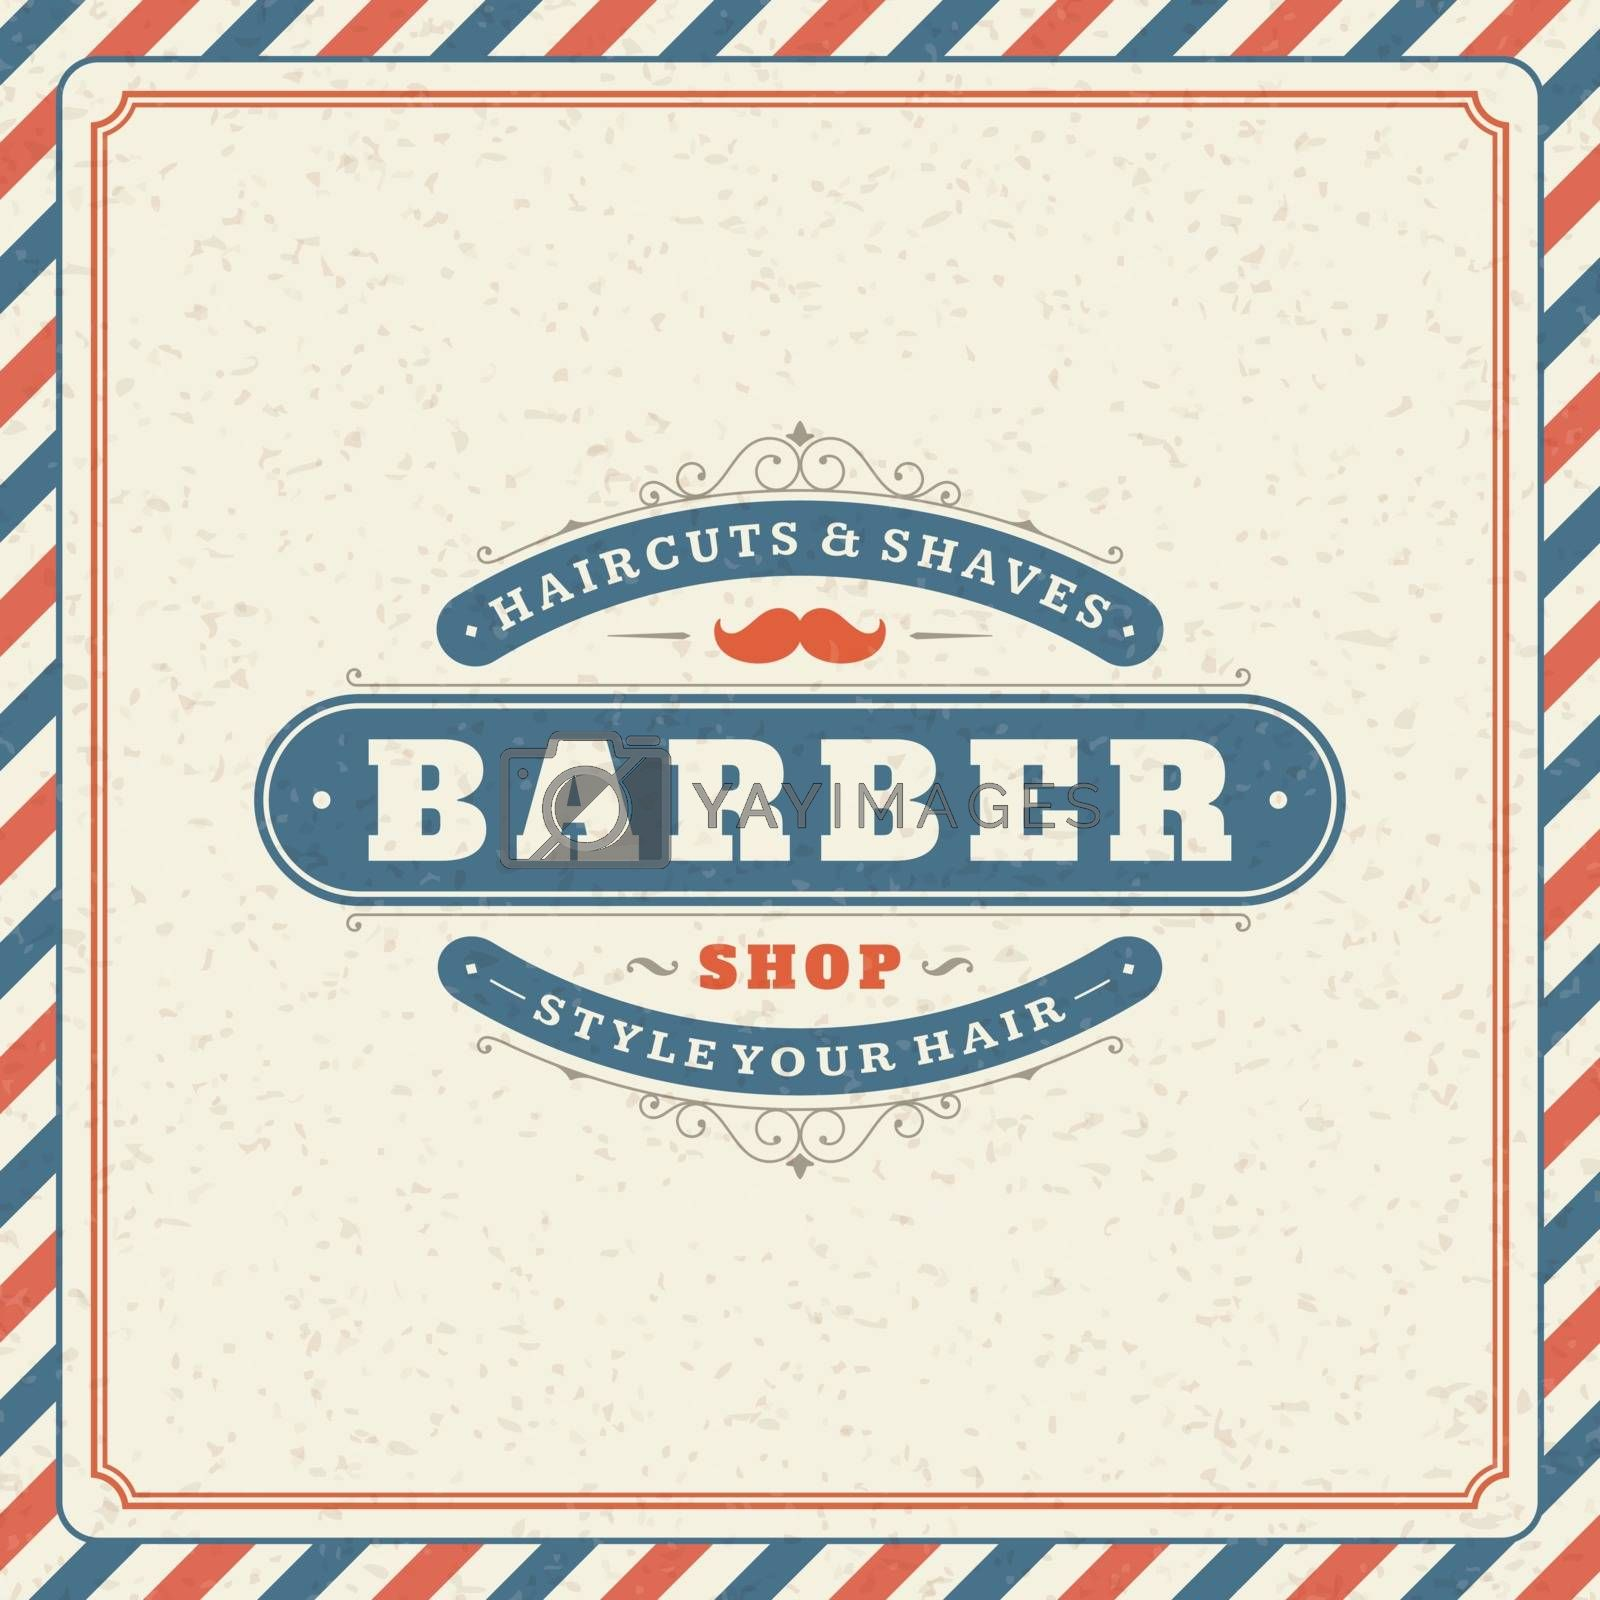 Retro barber shop background with logo in vector format.